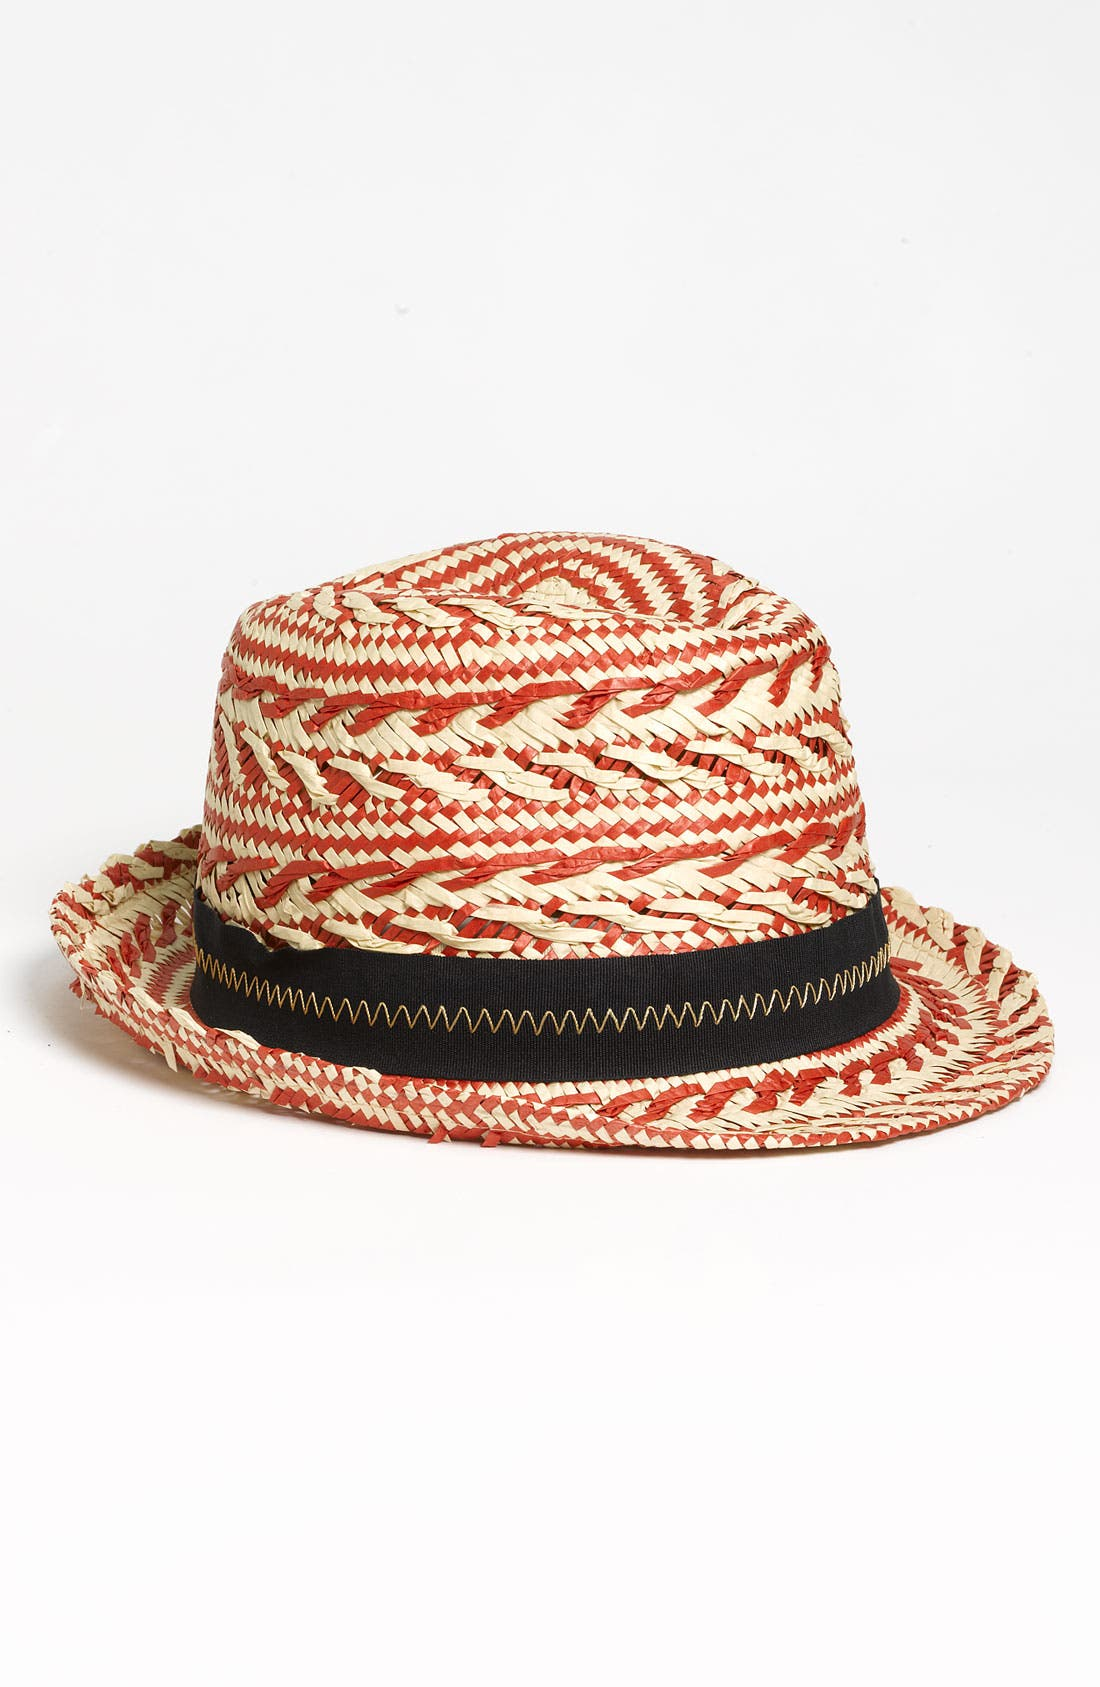 Alternate Image 1 Selected - Laundry by Shelli Segal 'Zoe' Two Tone Fedora